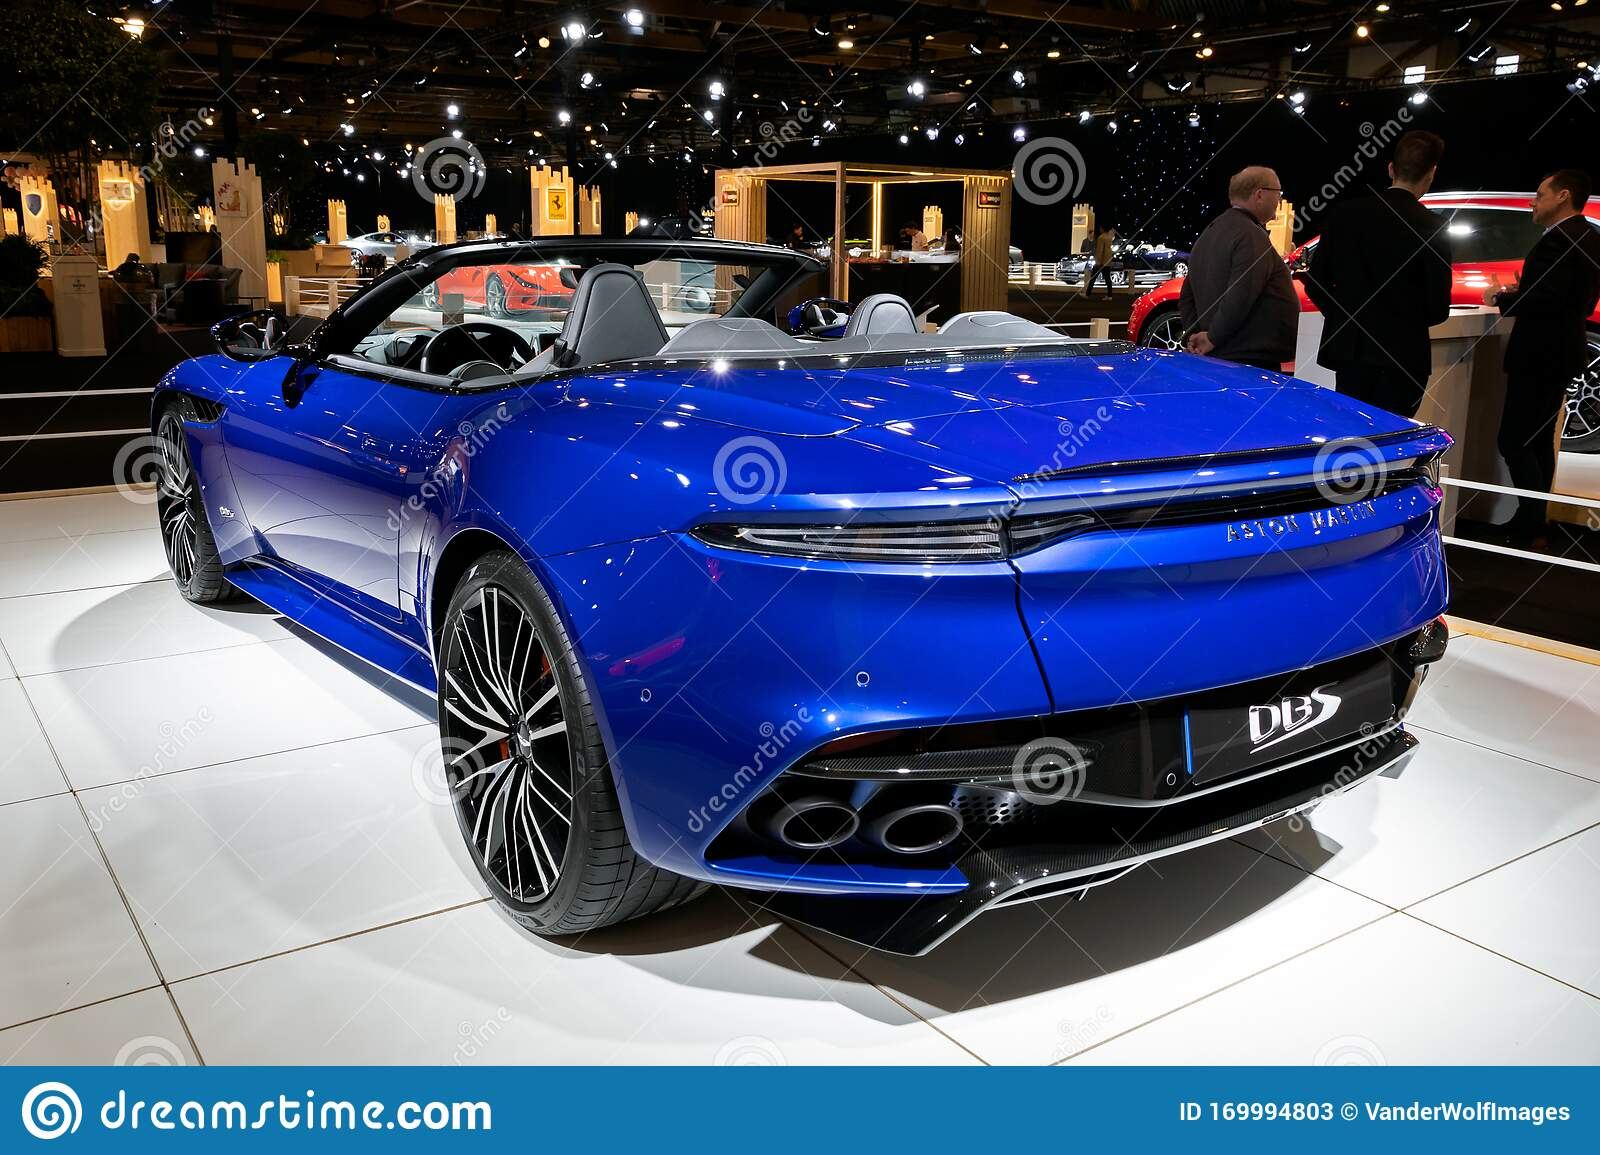 Brussels Jan 9 2020 Aston Martin Dbs Superleggera Volante Sports Car Showcased At The Brussels Autosalon 2020 Motor Show Editorial Stock Photo Image Of Type Fast 169994803